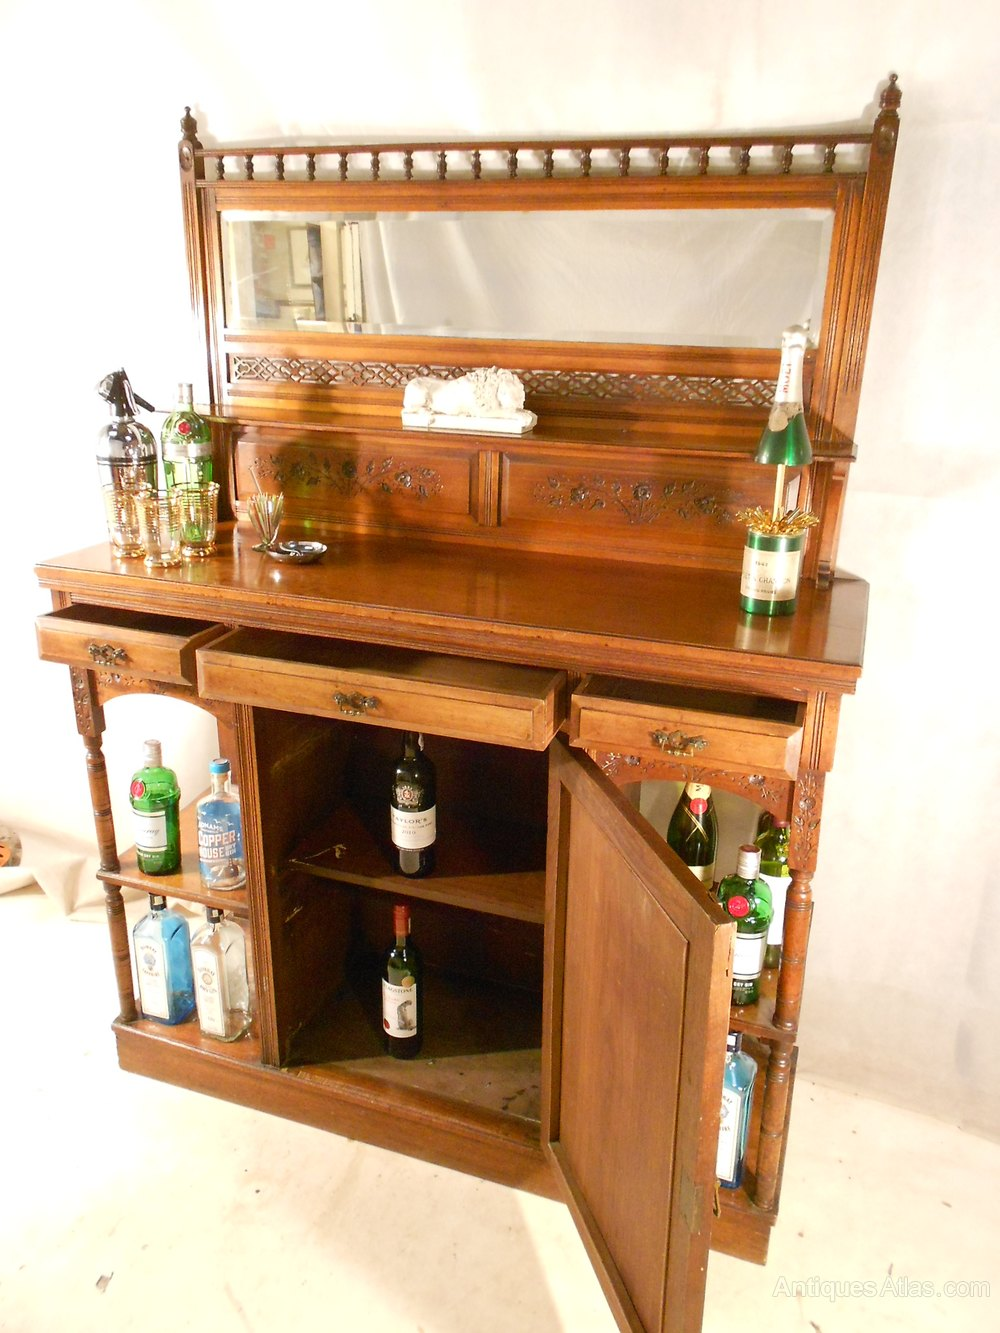 ... Antique Cocktail / Drinks Cabinets ... - Antique Victorian Drinks Cabinet C1880-1900 - Antiques Atlas